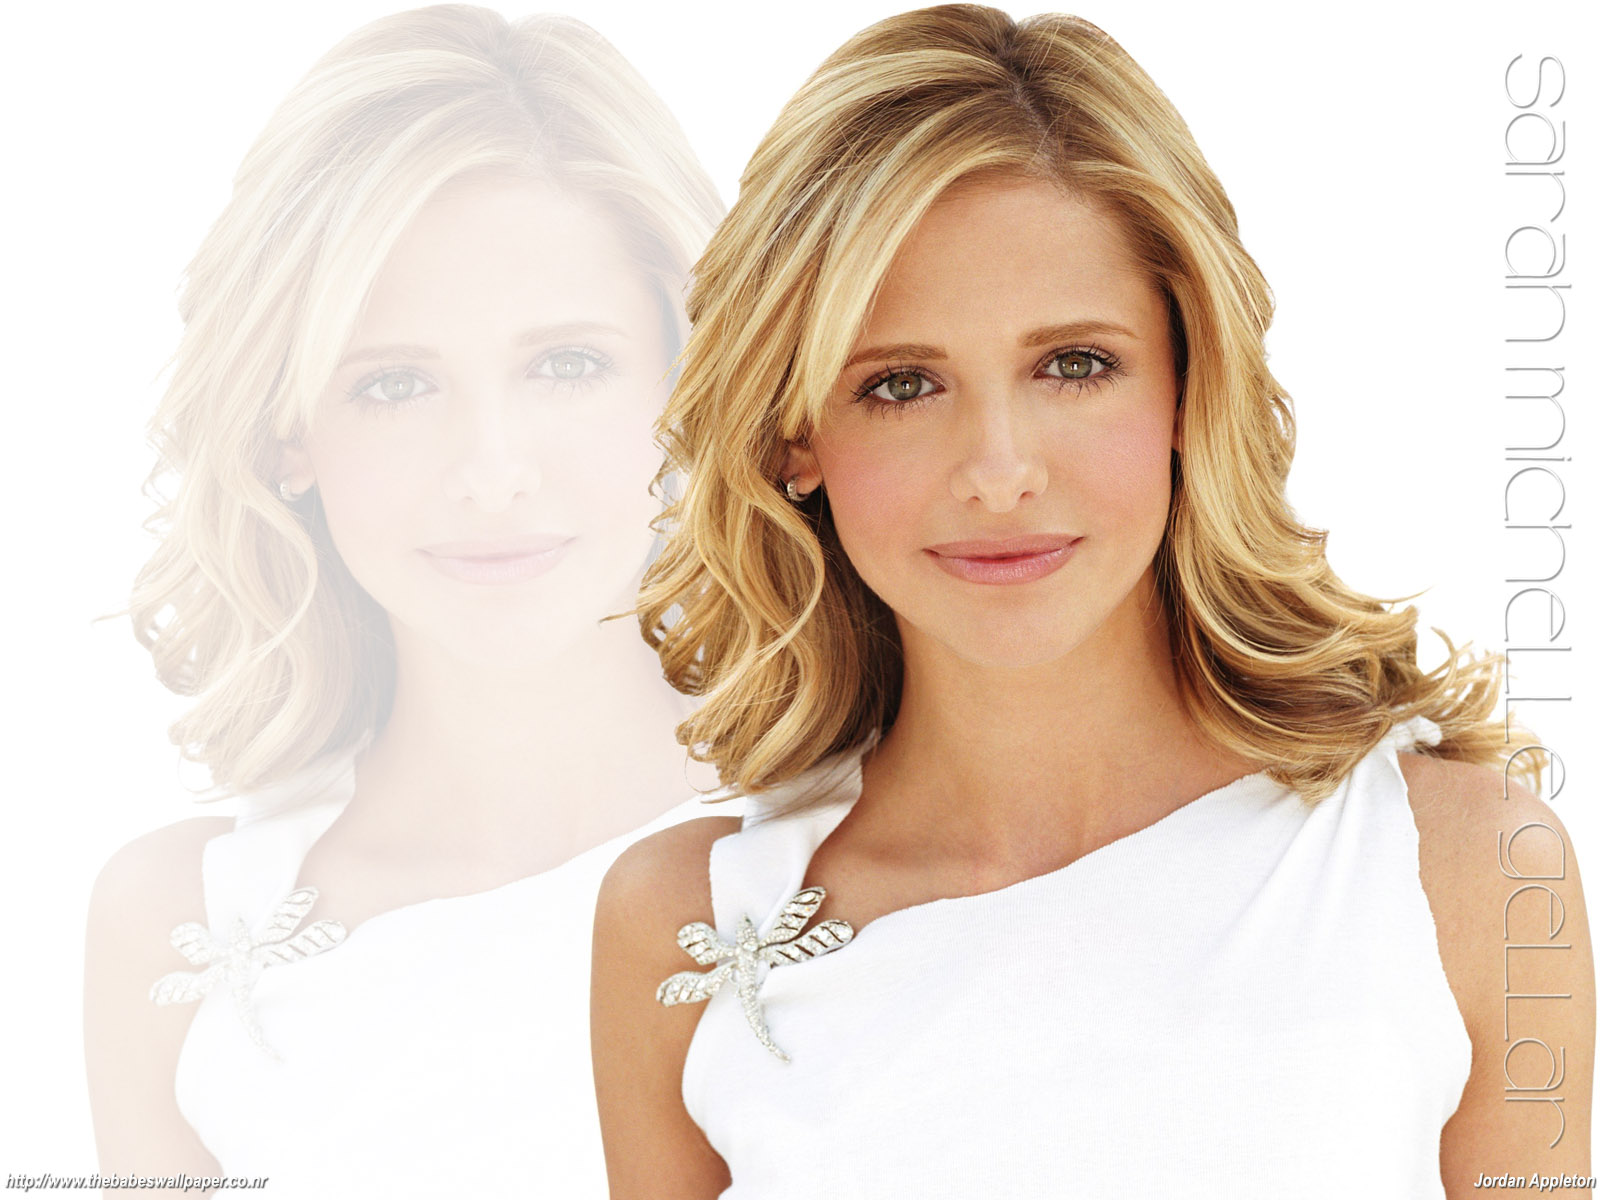 http://www.rexwallpapers.com/images/wallpapers/celebs/sarah/sarah_michelle_gellar_1.jpg